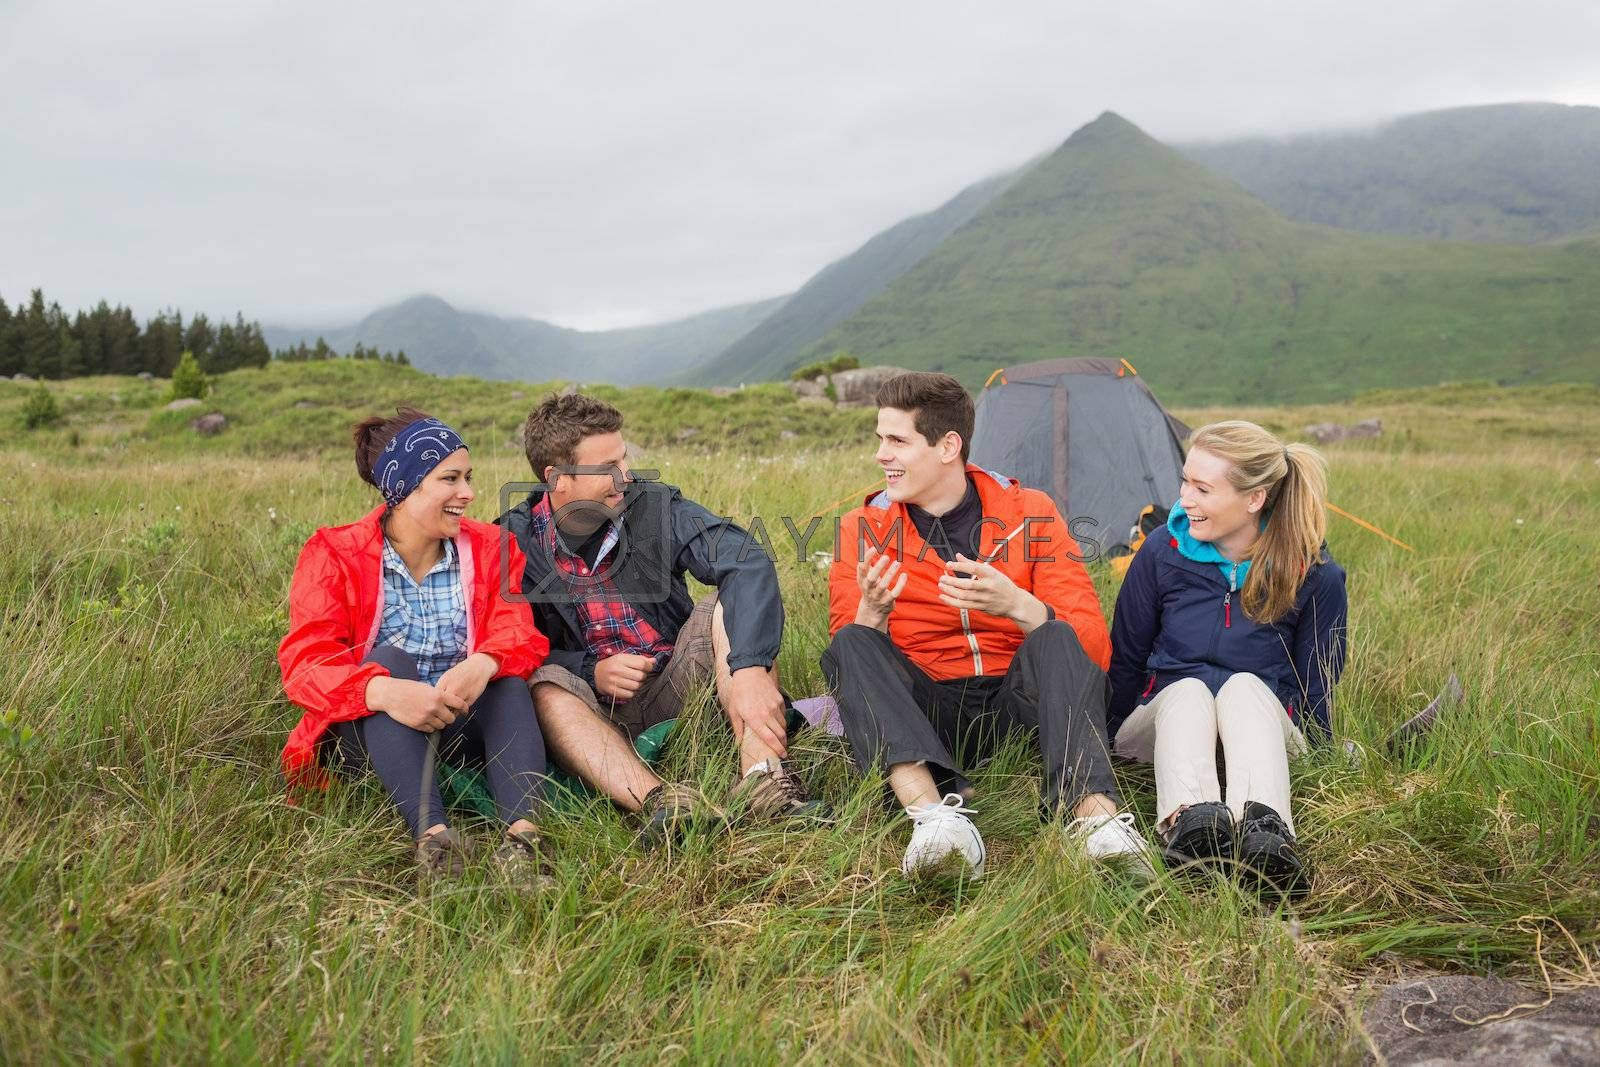 Friends chatting together on camping trip by Wavebreakmedia